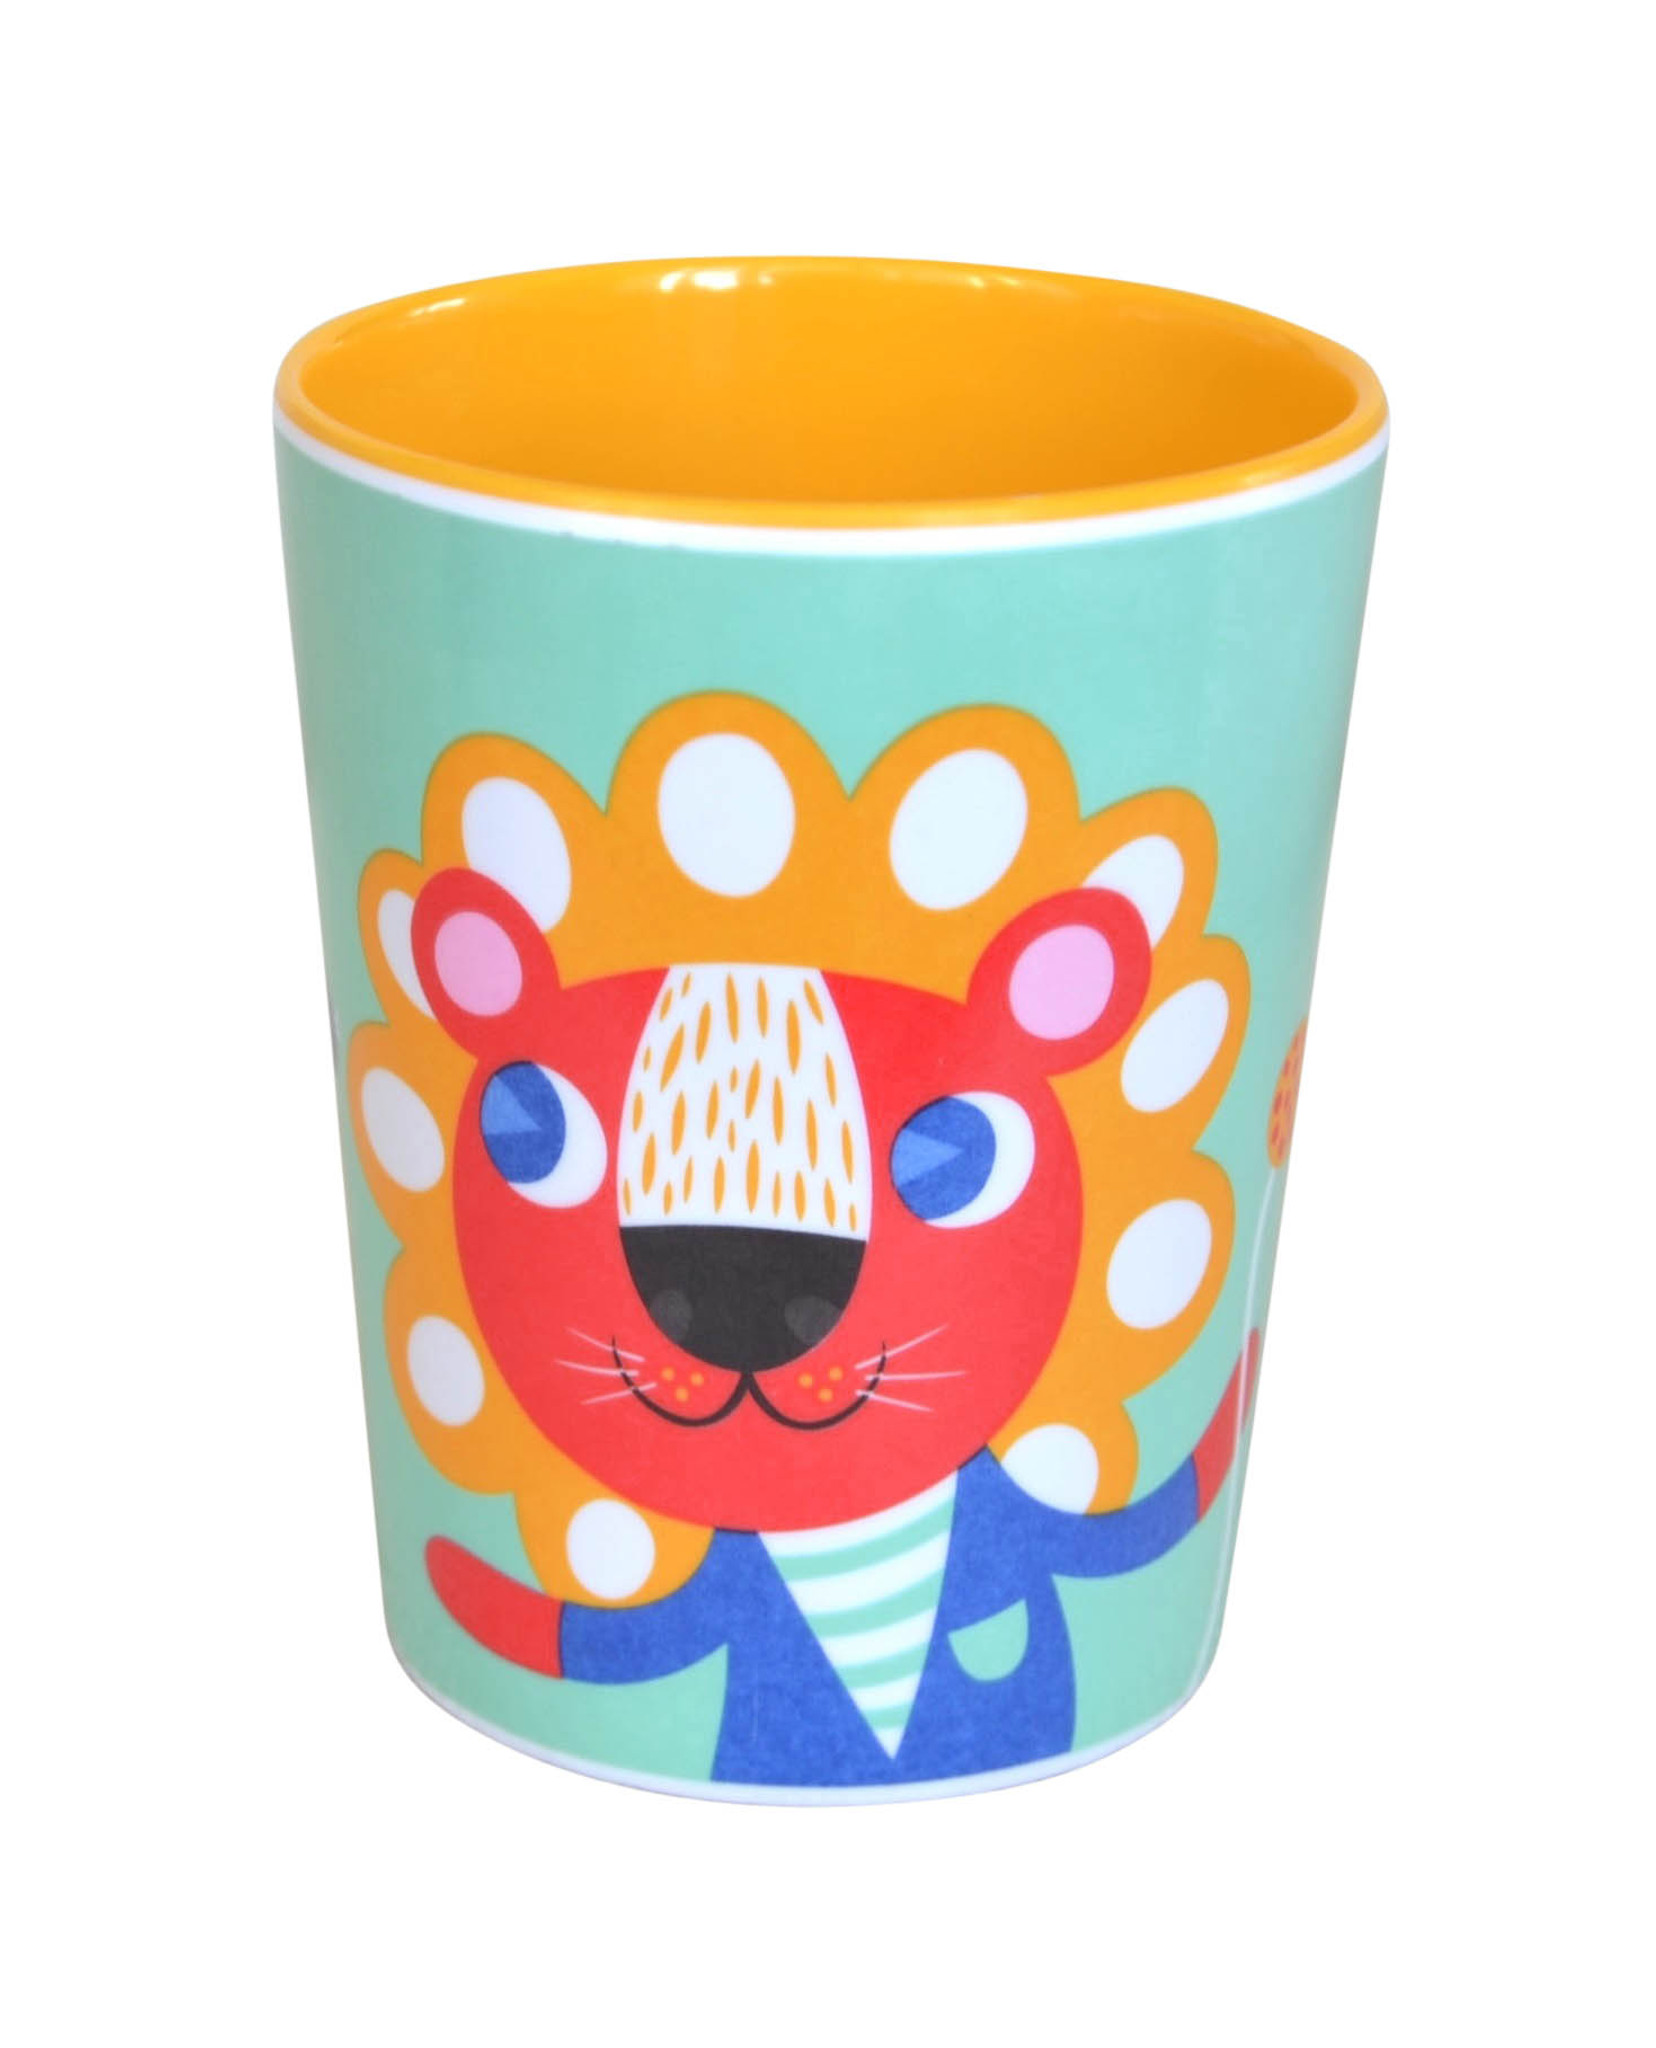 Mint Lion and Tiger Cup